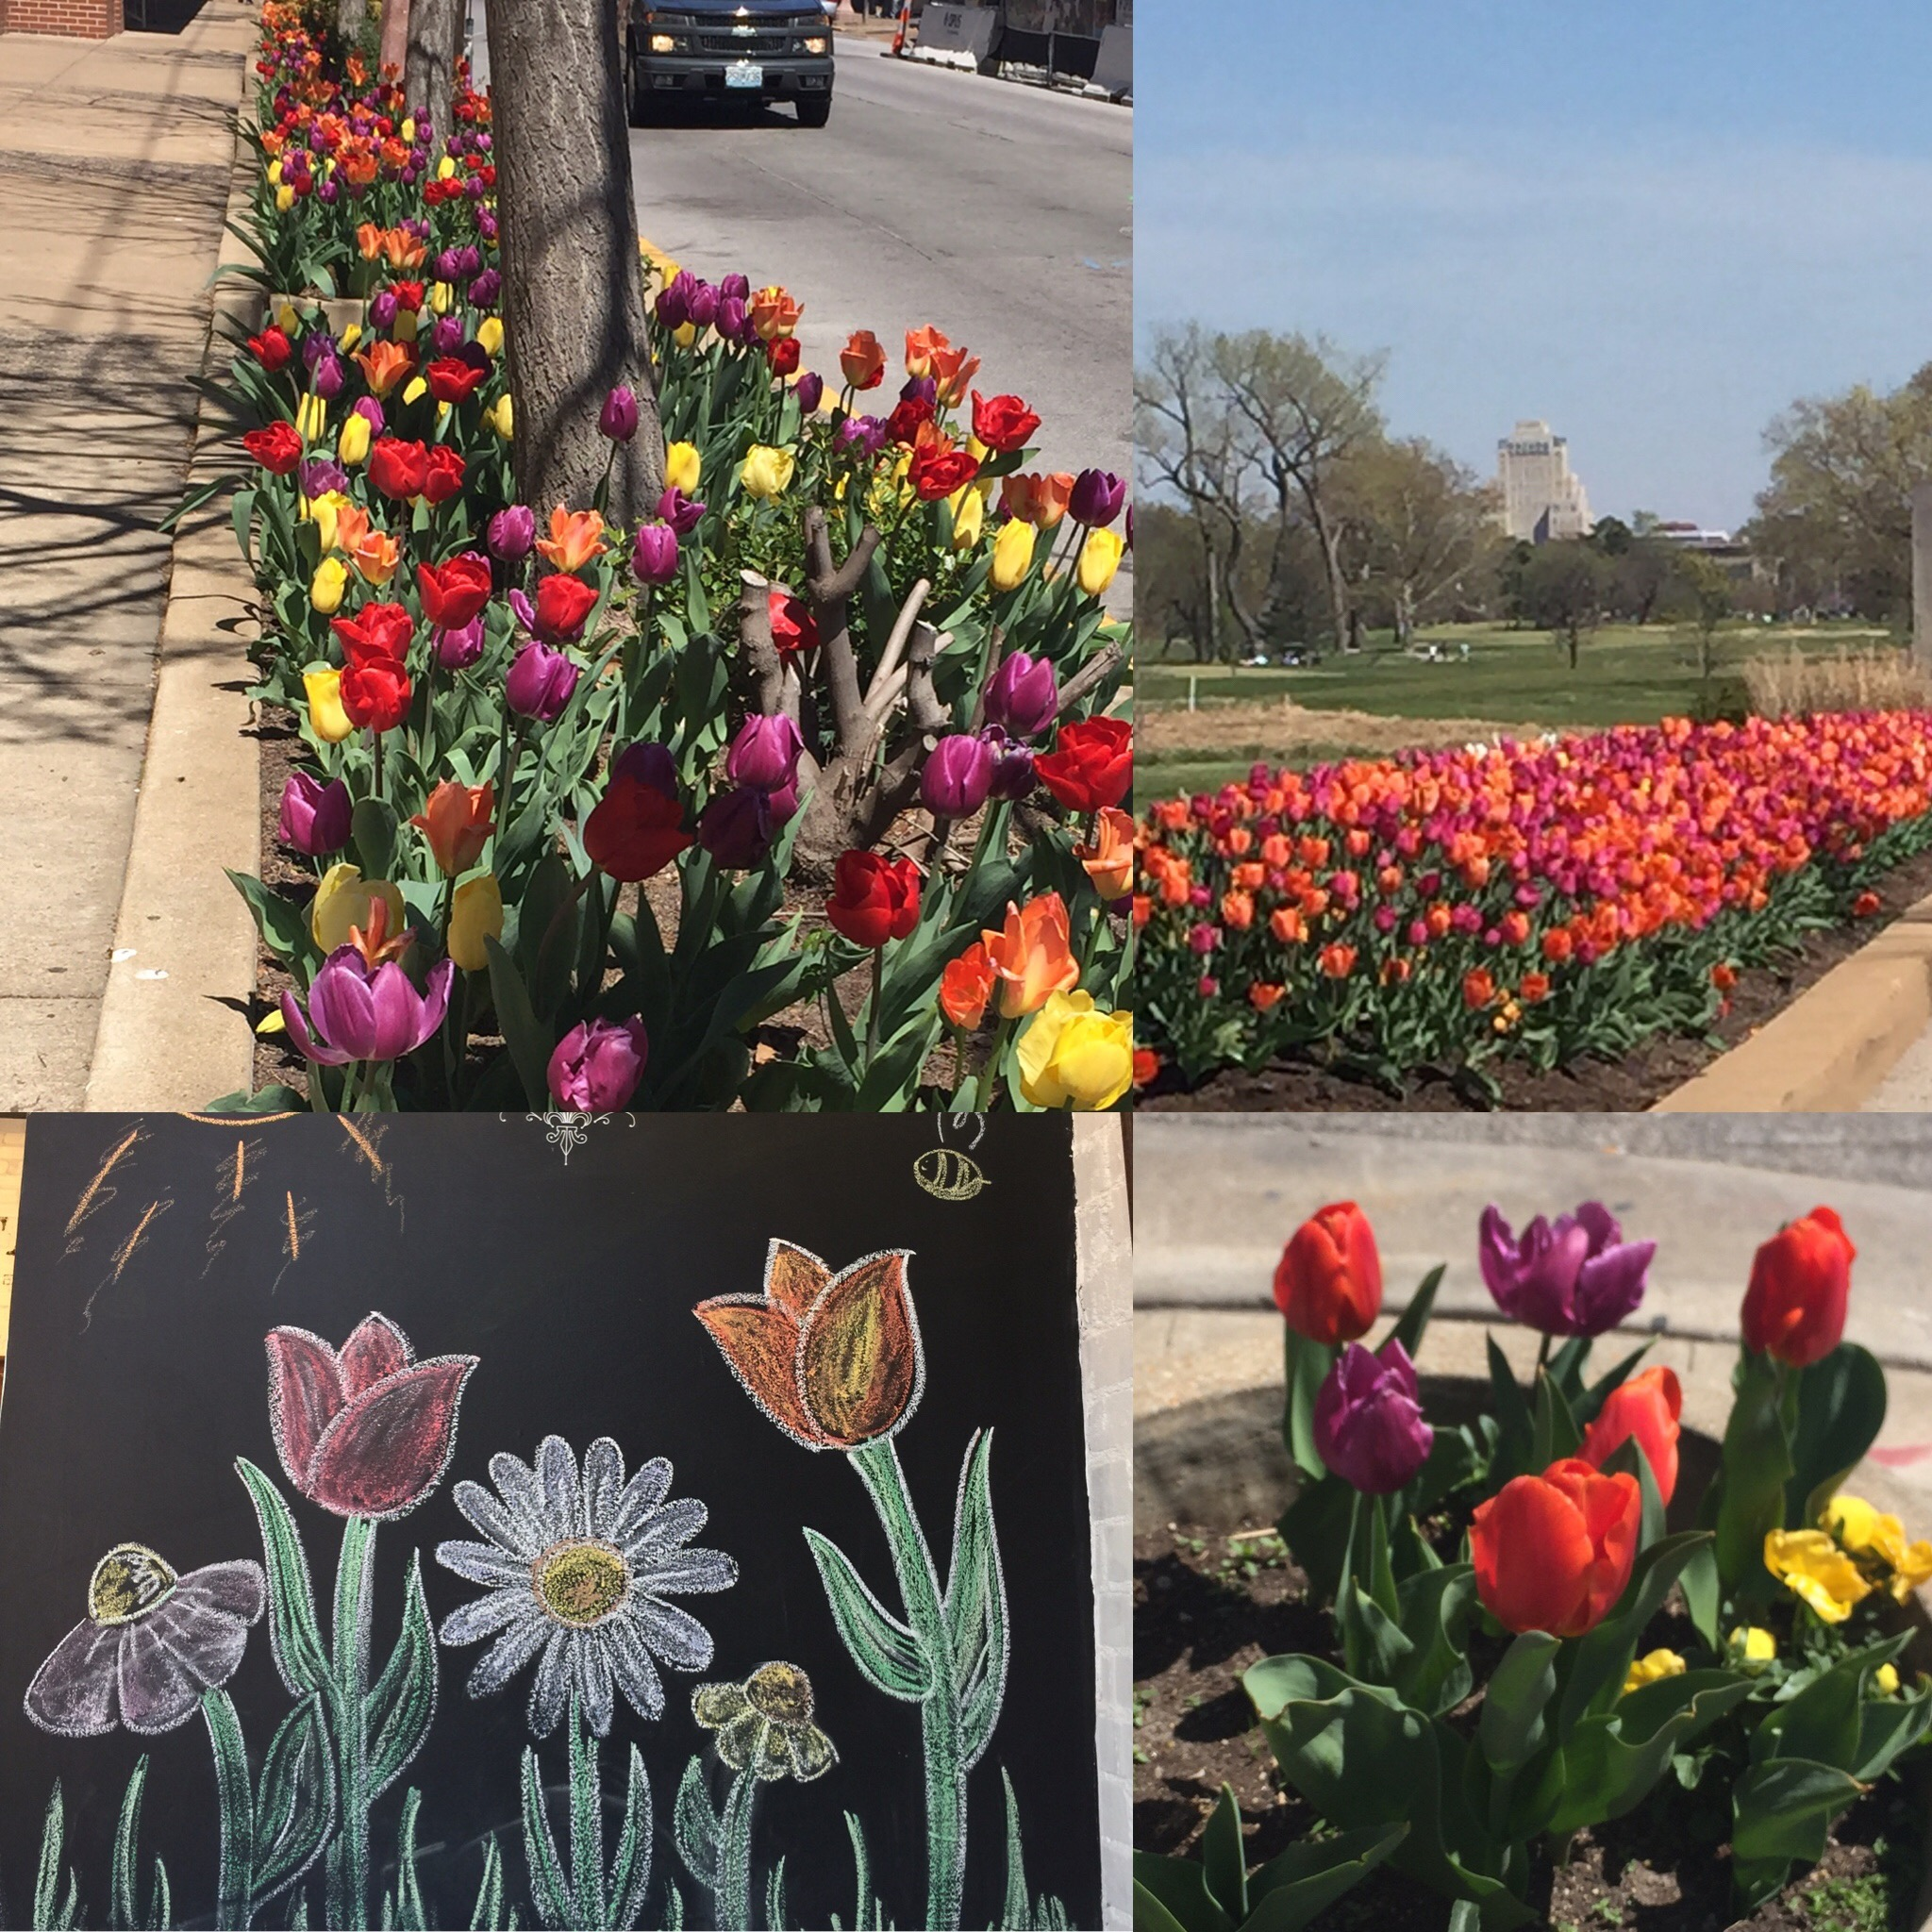 Tulips in St. Louis Weekend Foodie Getaway from Spinach Tiger